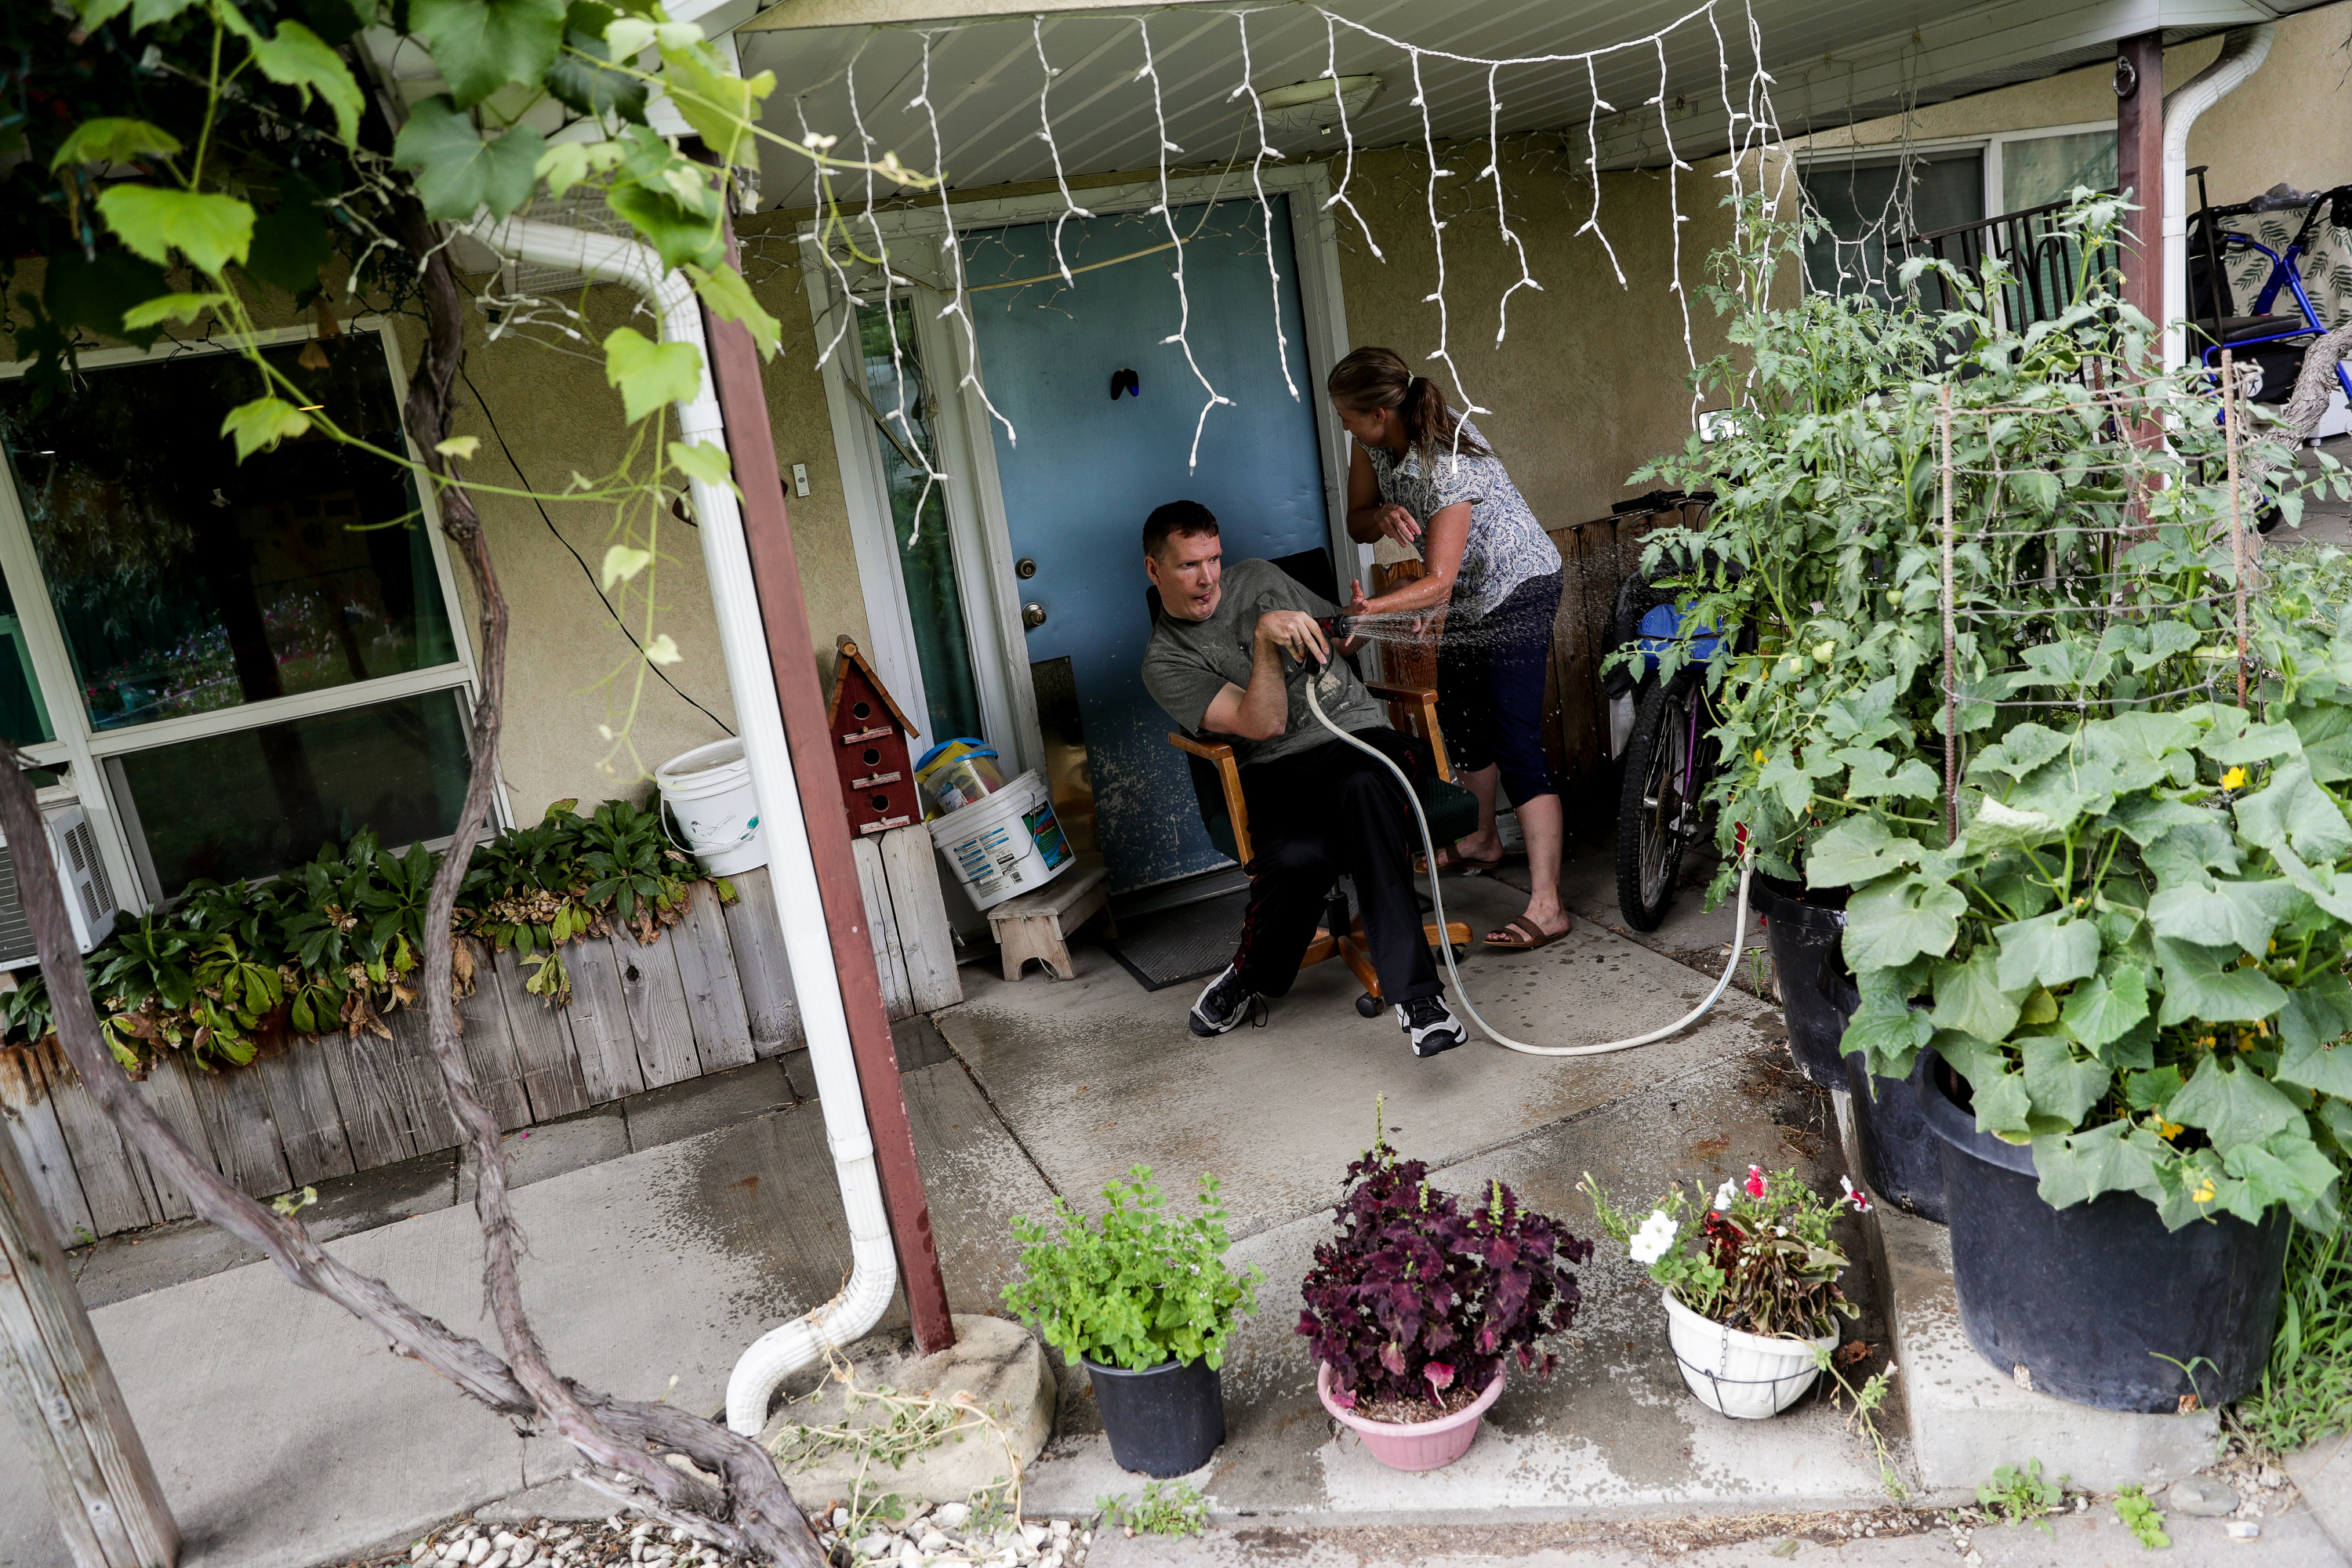 Orin Voorheis jokingly directs a hose at his caregiver, Wendy Tobey, while watering plants outside his home in Pleasant Grove, Utah, on Tuesday, July 10, 2018.